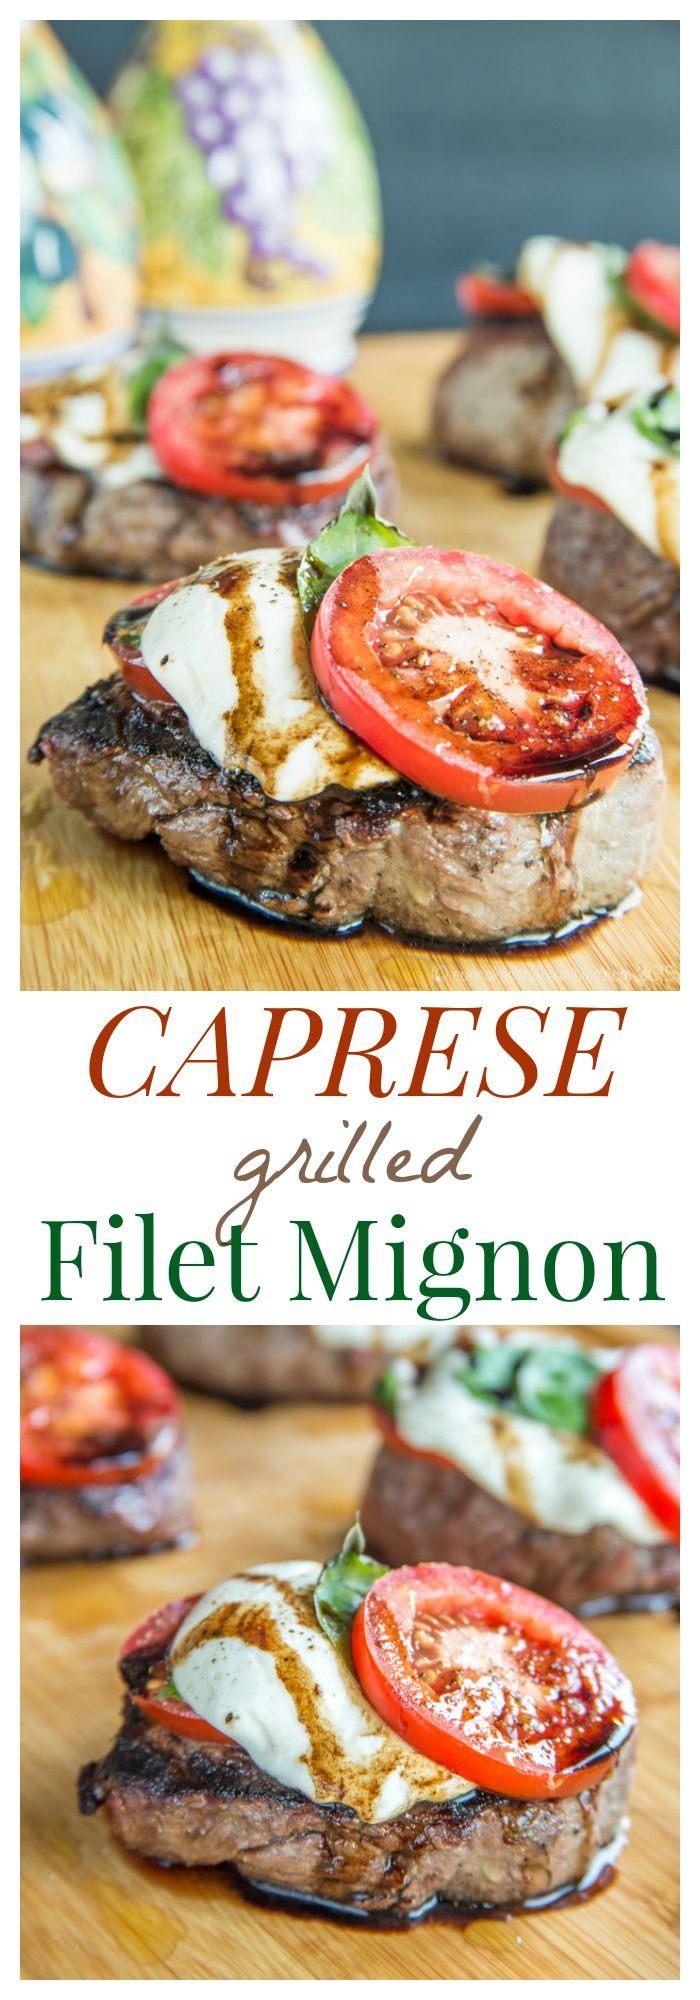 Caprese Grilled Filet Mignon - perfectly grilled steaks with the classic salad of tomatoes, fresh mozzarella, and basil for a perfect summer dinner!  From cupcakesandkalechips.com #healthy #lowcarb